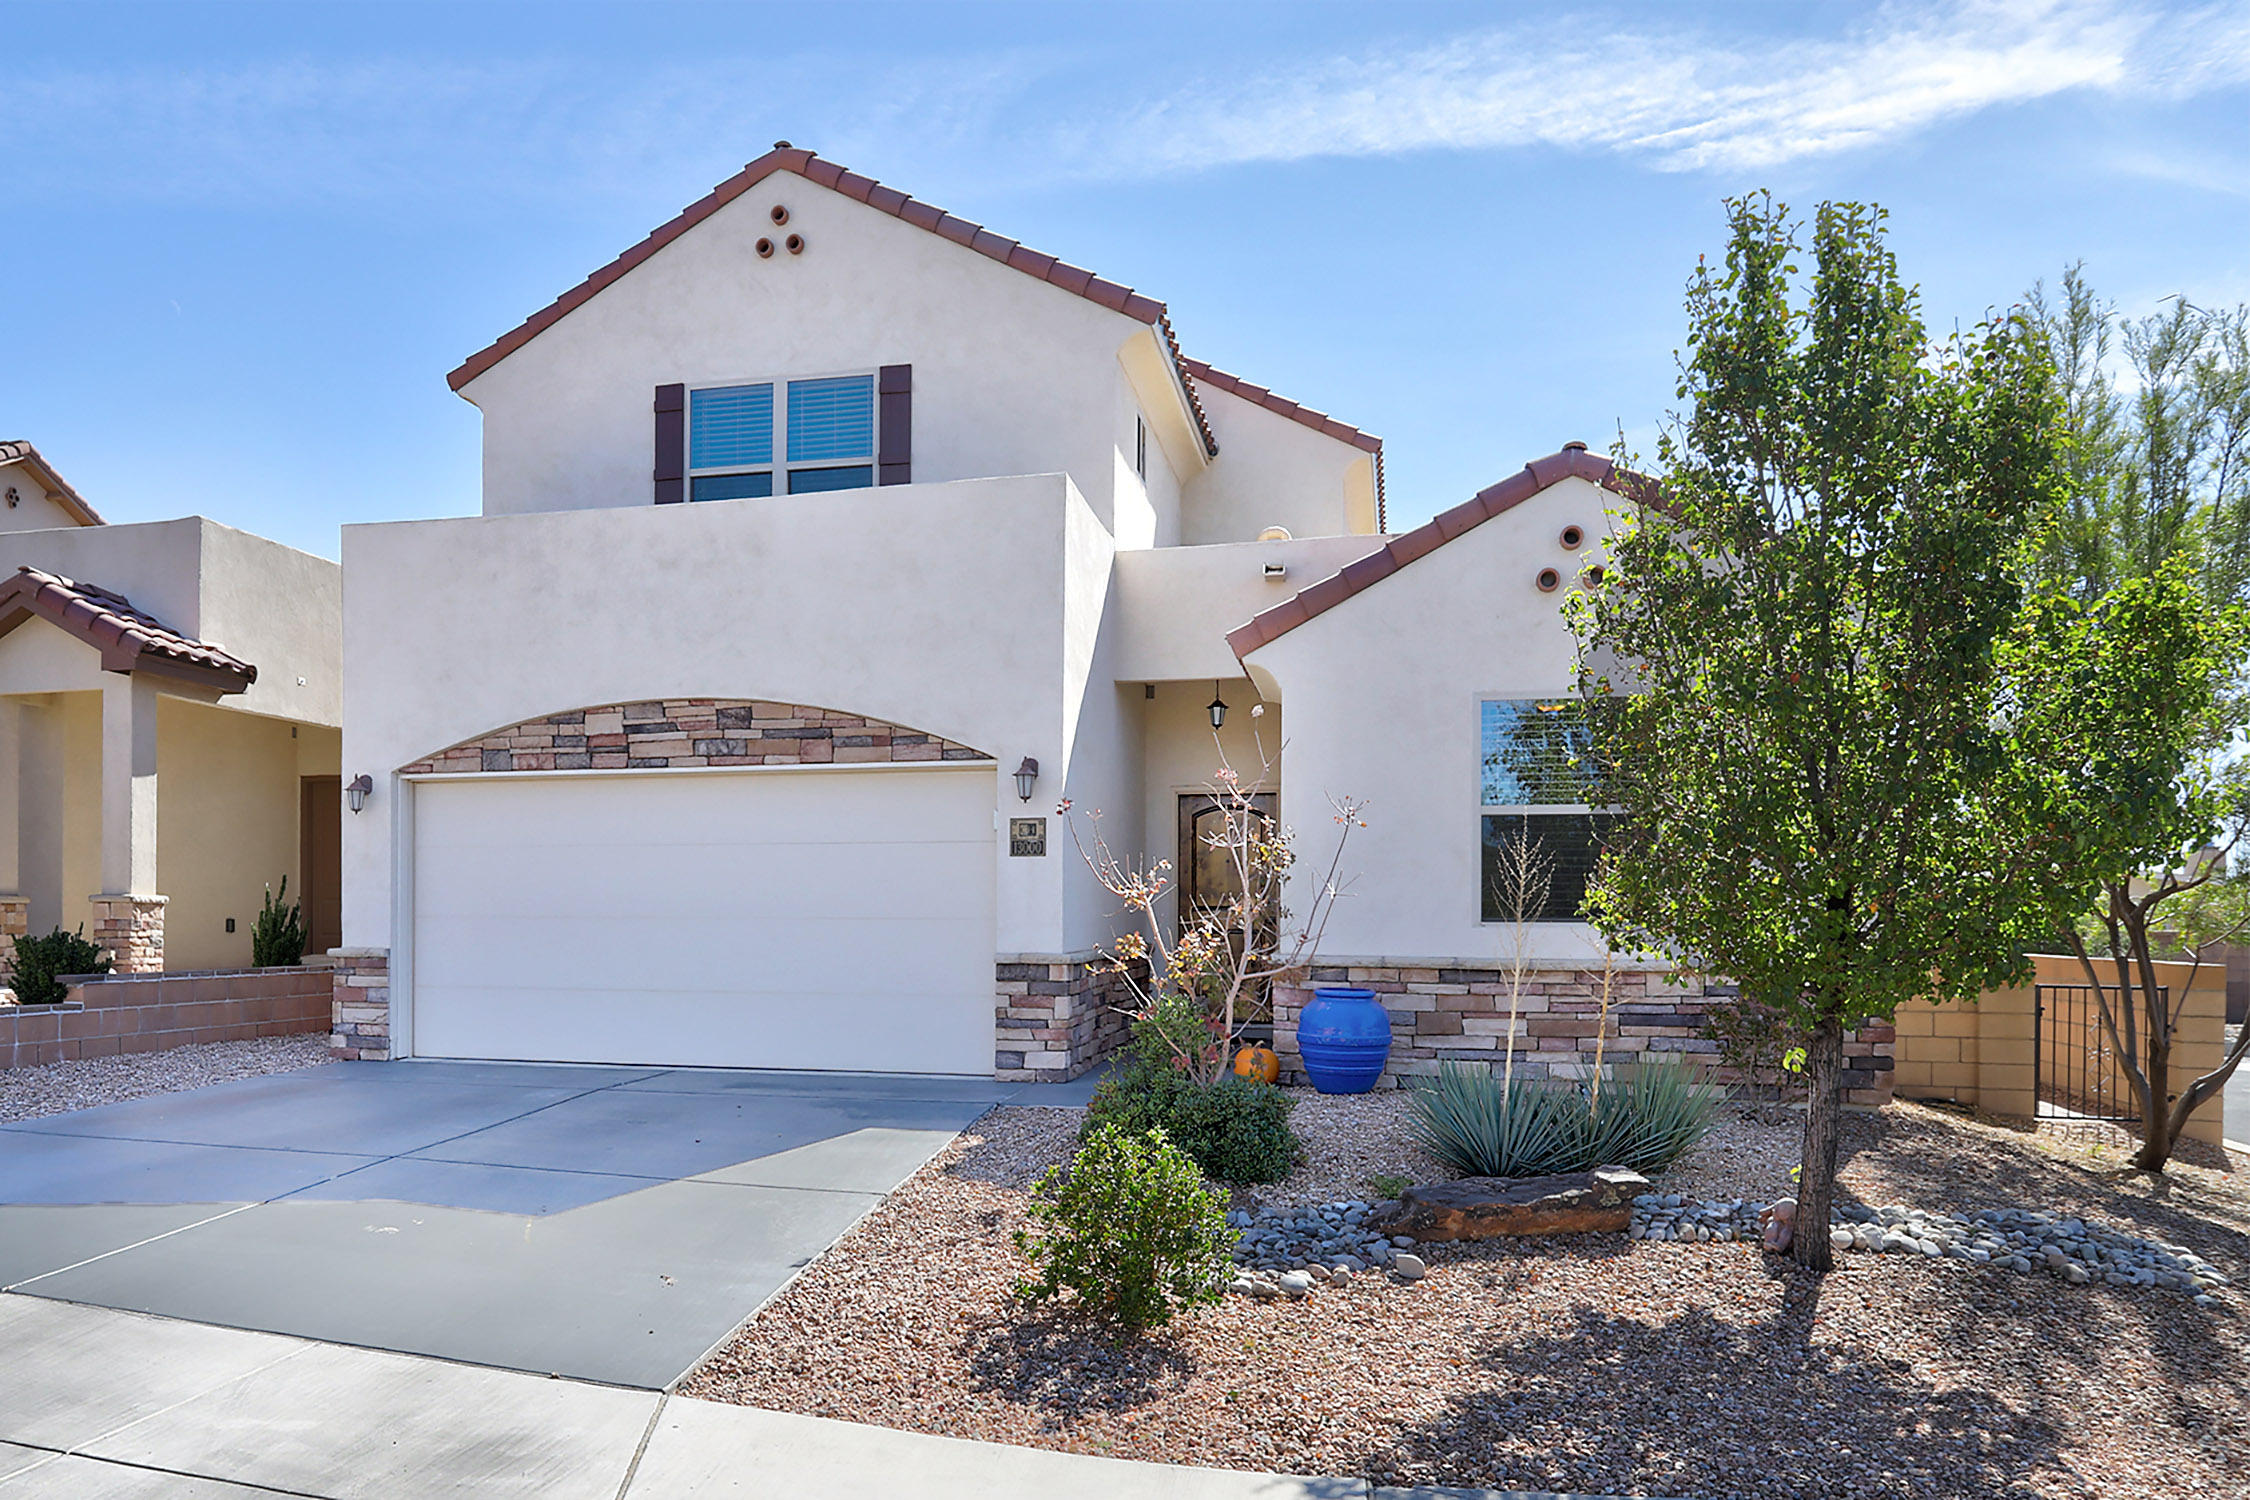 In a Gated Community Nestled in the NE Heights near the foothills! OPEN HOUSE ON SATURDAY 10/24 - 1-4pm.   Only minutes from I-40 and Sandia Labs, you will find this Amazing Dream Home! Beautiful engineered wood in the entry way, formal dining area and great room, 18 inch tile in the kitchen, laundry room and all wet areas. The Cook's kitchen has Alder cabinetry with granite counters, tile back-splash, butler's pantry + more! Downstairs is a full bedroom/study/guest suite with an adjacent full bath. Upstairs is a fabulous reading loft with a built-in bookshelf and amazing sunset views. Master Suite with custom walk-in wraparound master shower with three shower heads including rain head, walk-in closet, and view balcony.  COME SEE THIS BEAUTY!